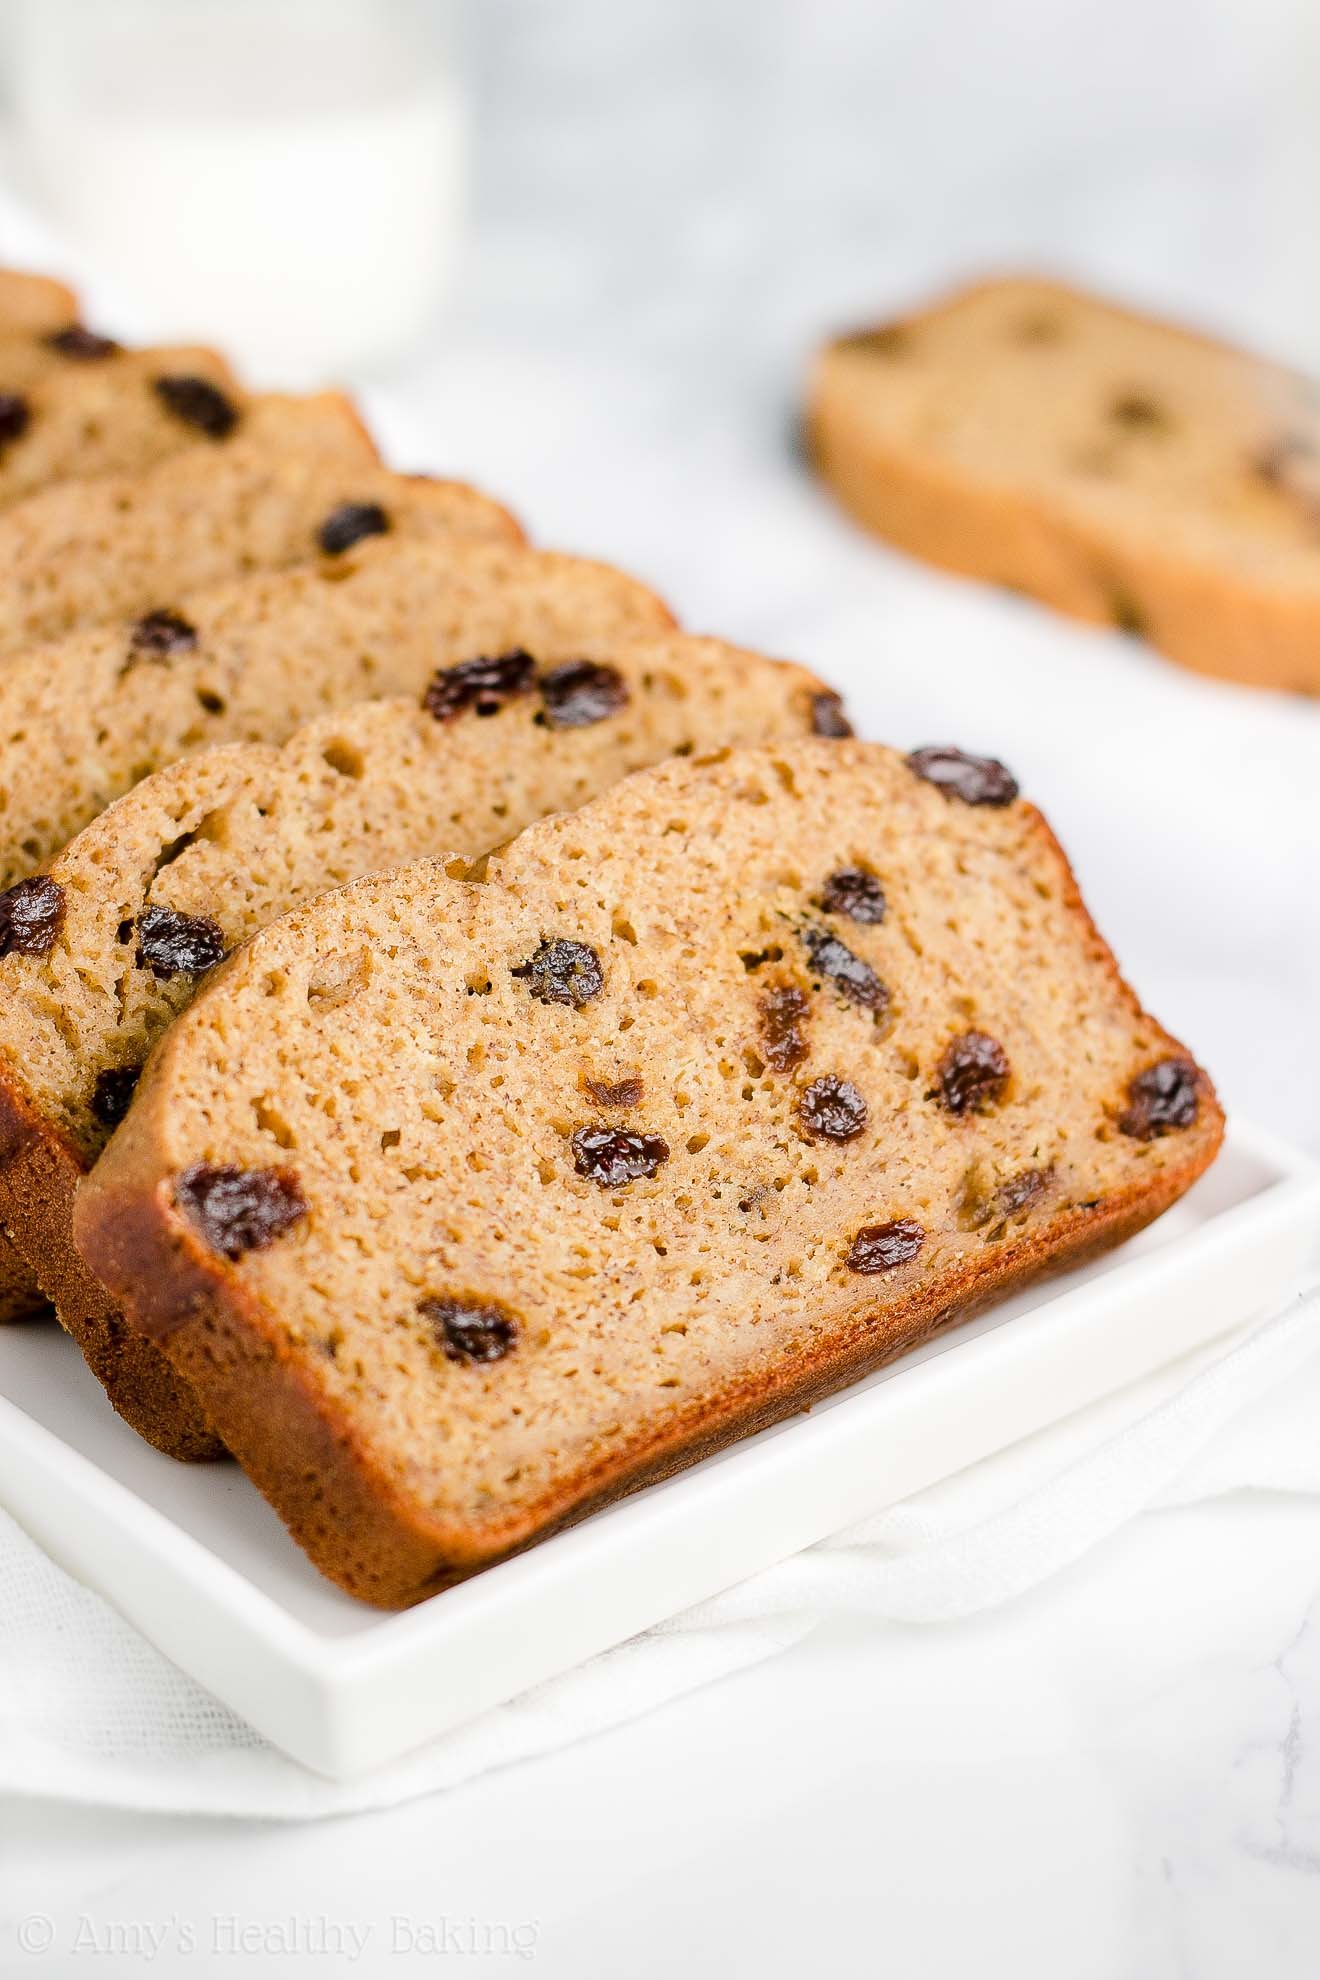 Healthy Cinnamon Raisin Banana Bread with Weight Watchers points